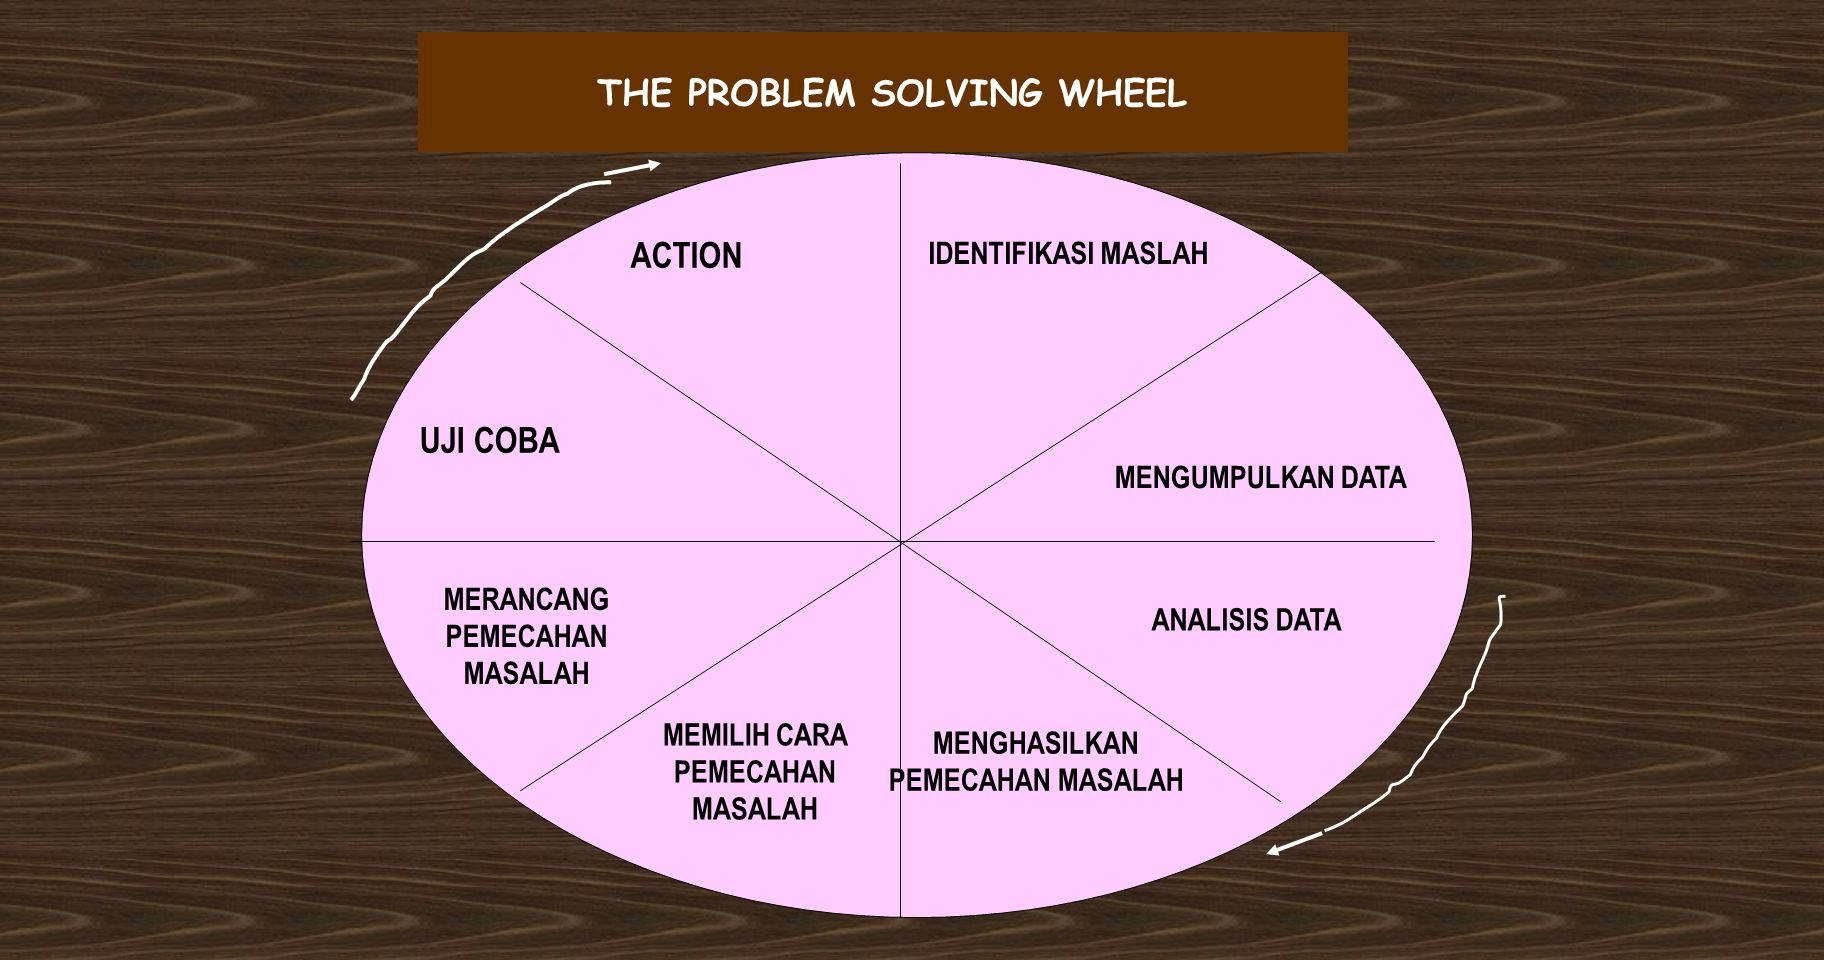 THE PROBLEM SOLVING WHEEL